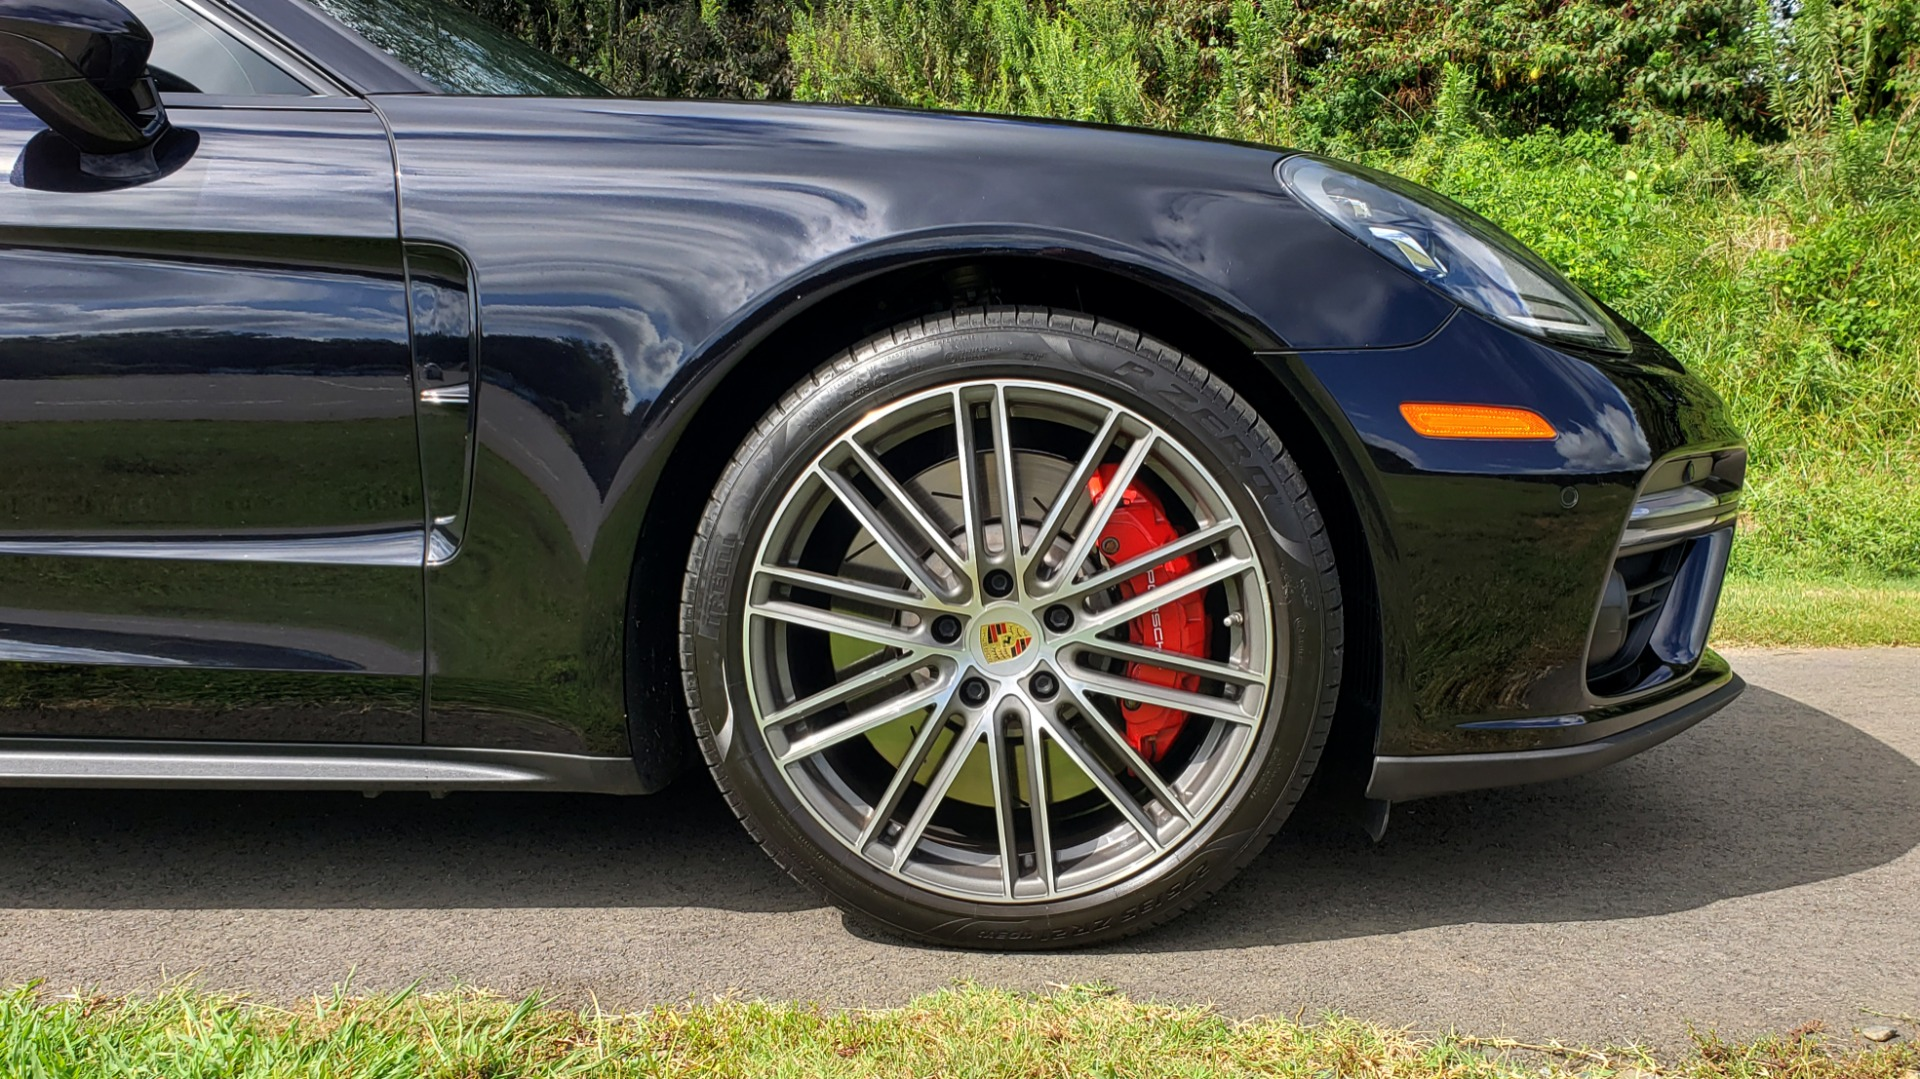 Used 2017 Porsche PANAMERA TURBO AWD / 4.0L V8 / AUTO / NAV / BOSE / REARVIEW / 21IN WHEELS for sale $98,995 at Formula Imports in Charlotte NC 28227 87